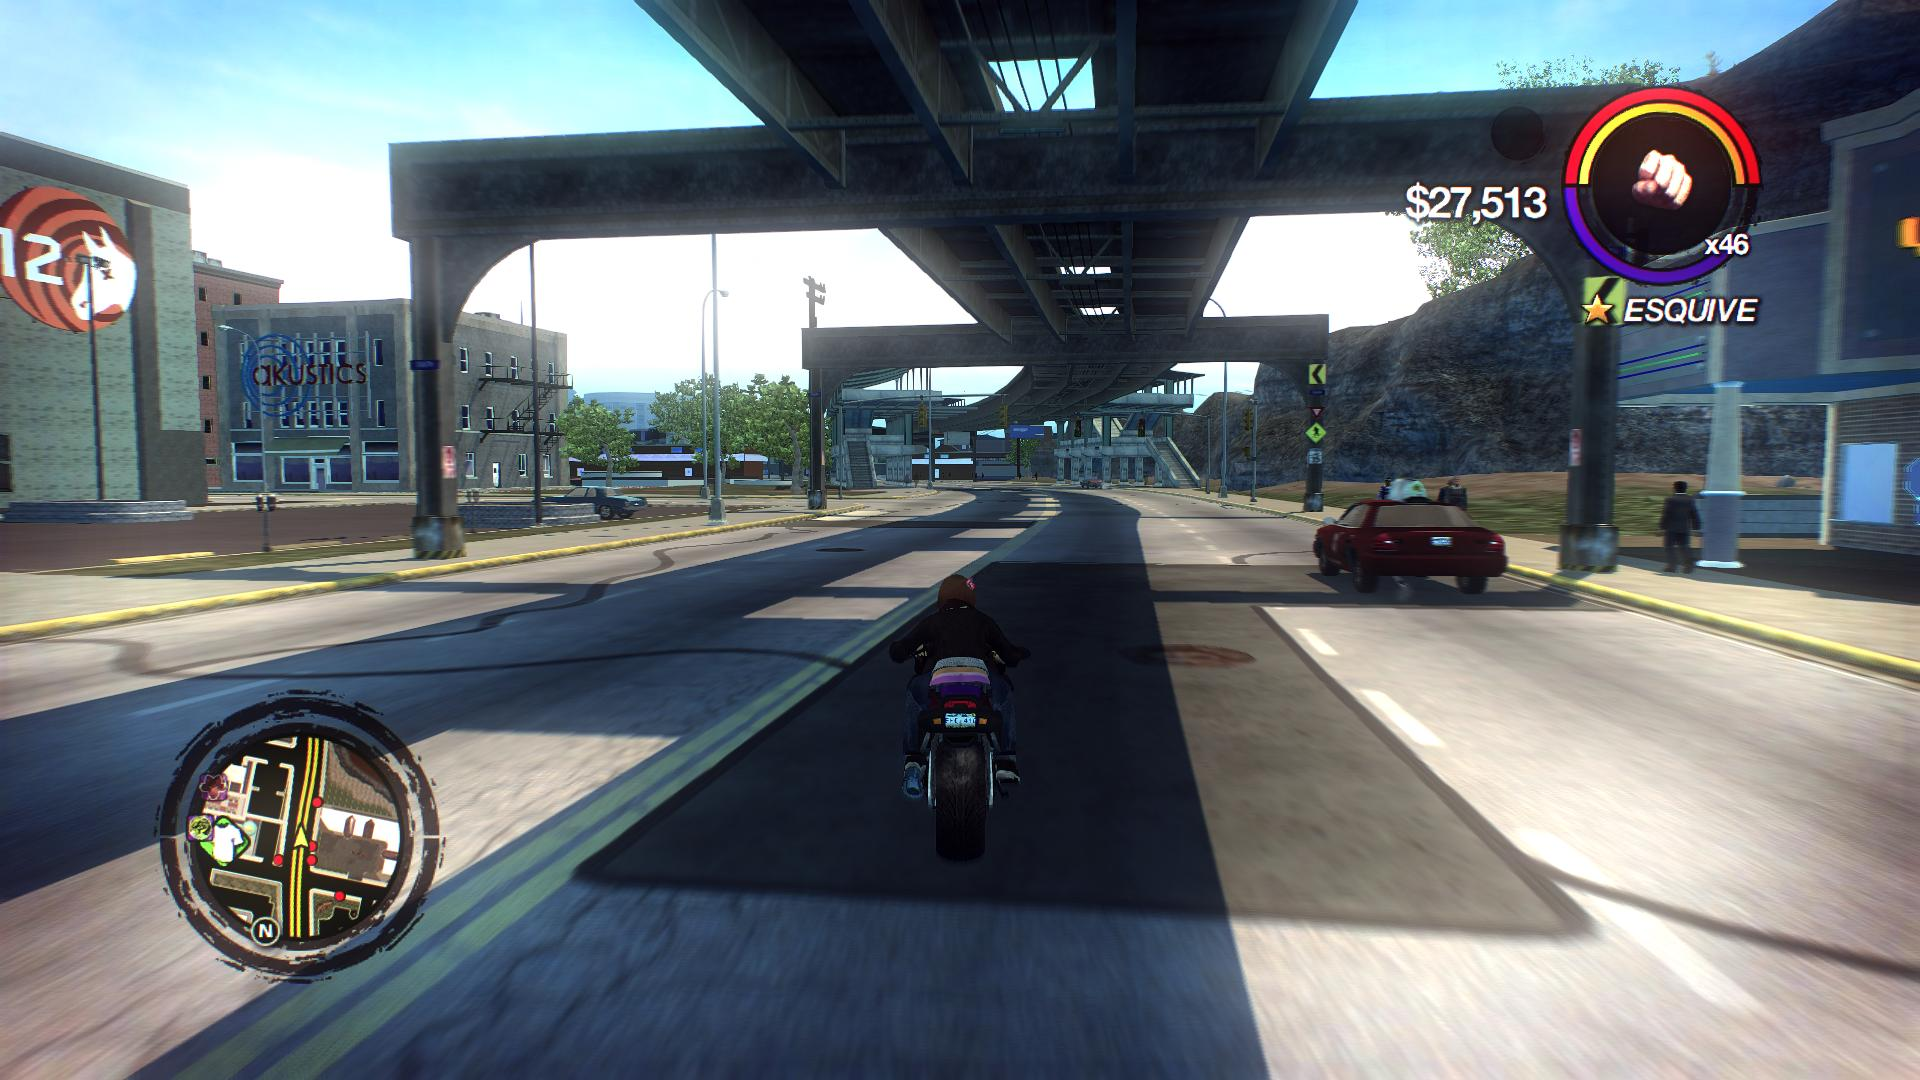 Saints row 2 patch naked gallery